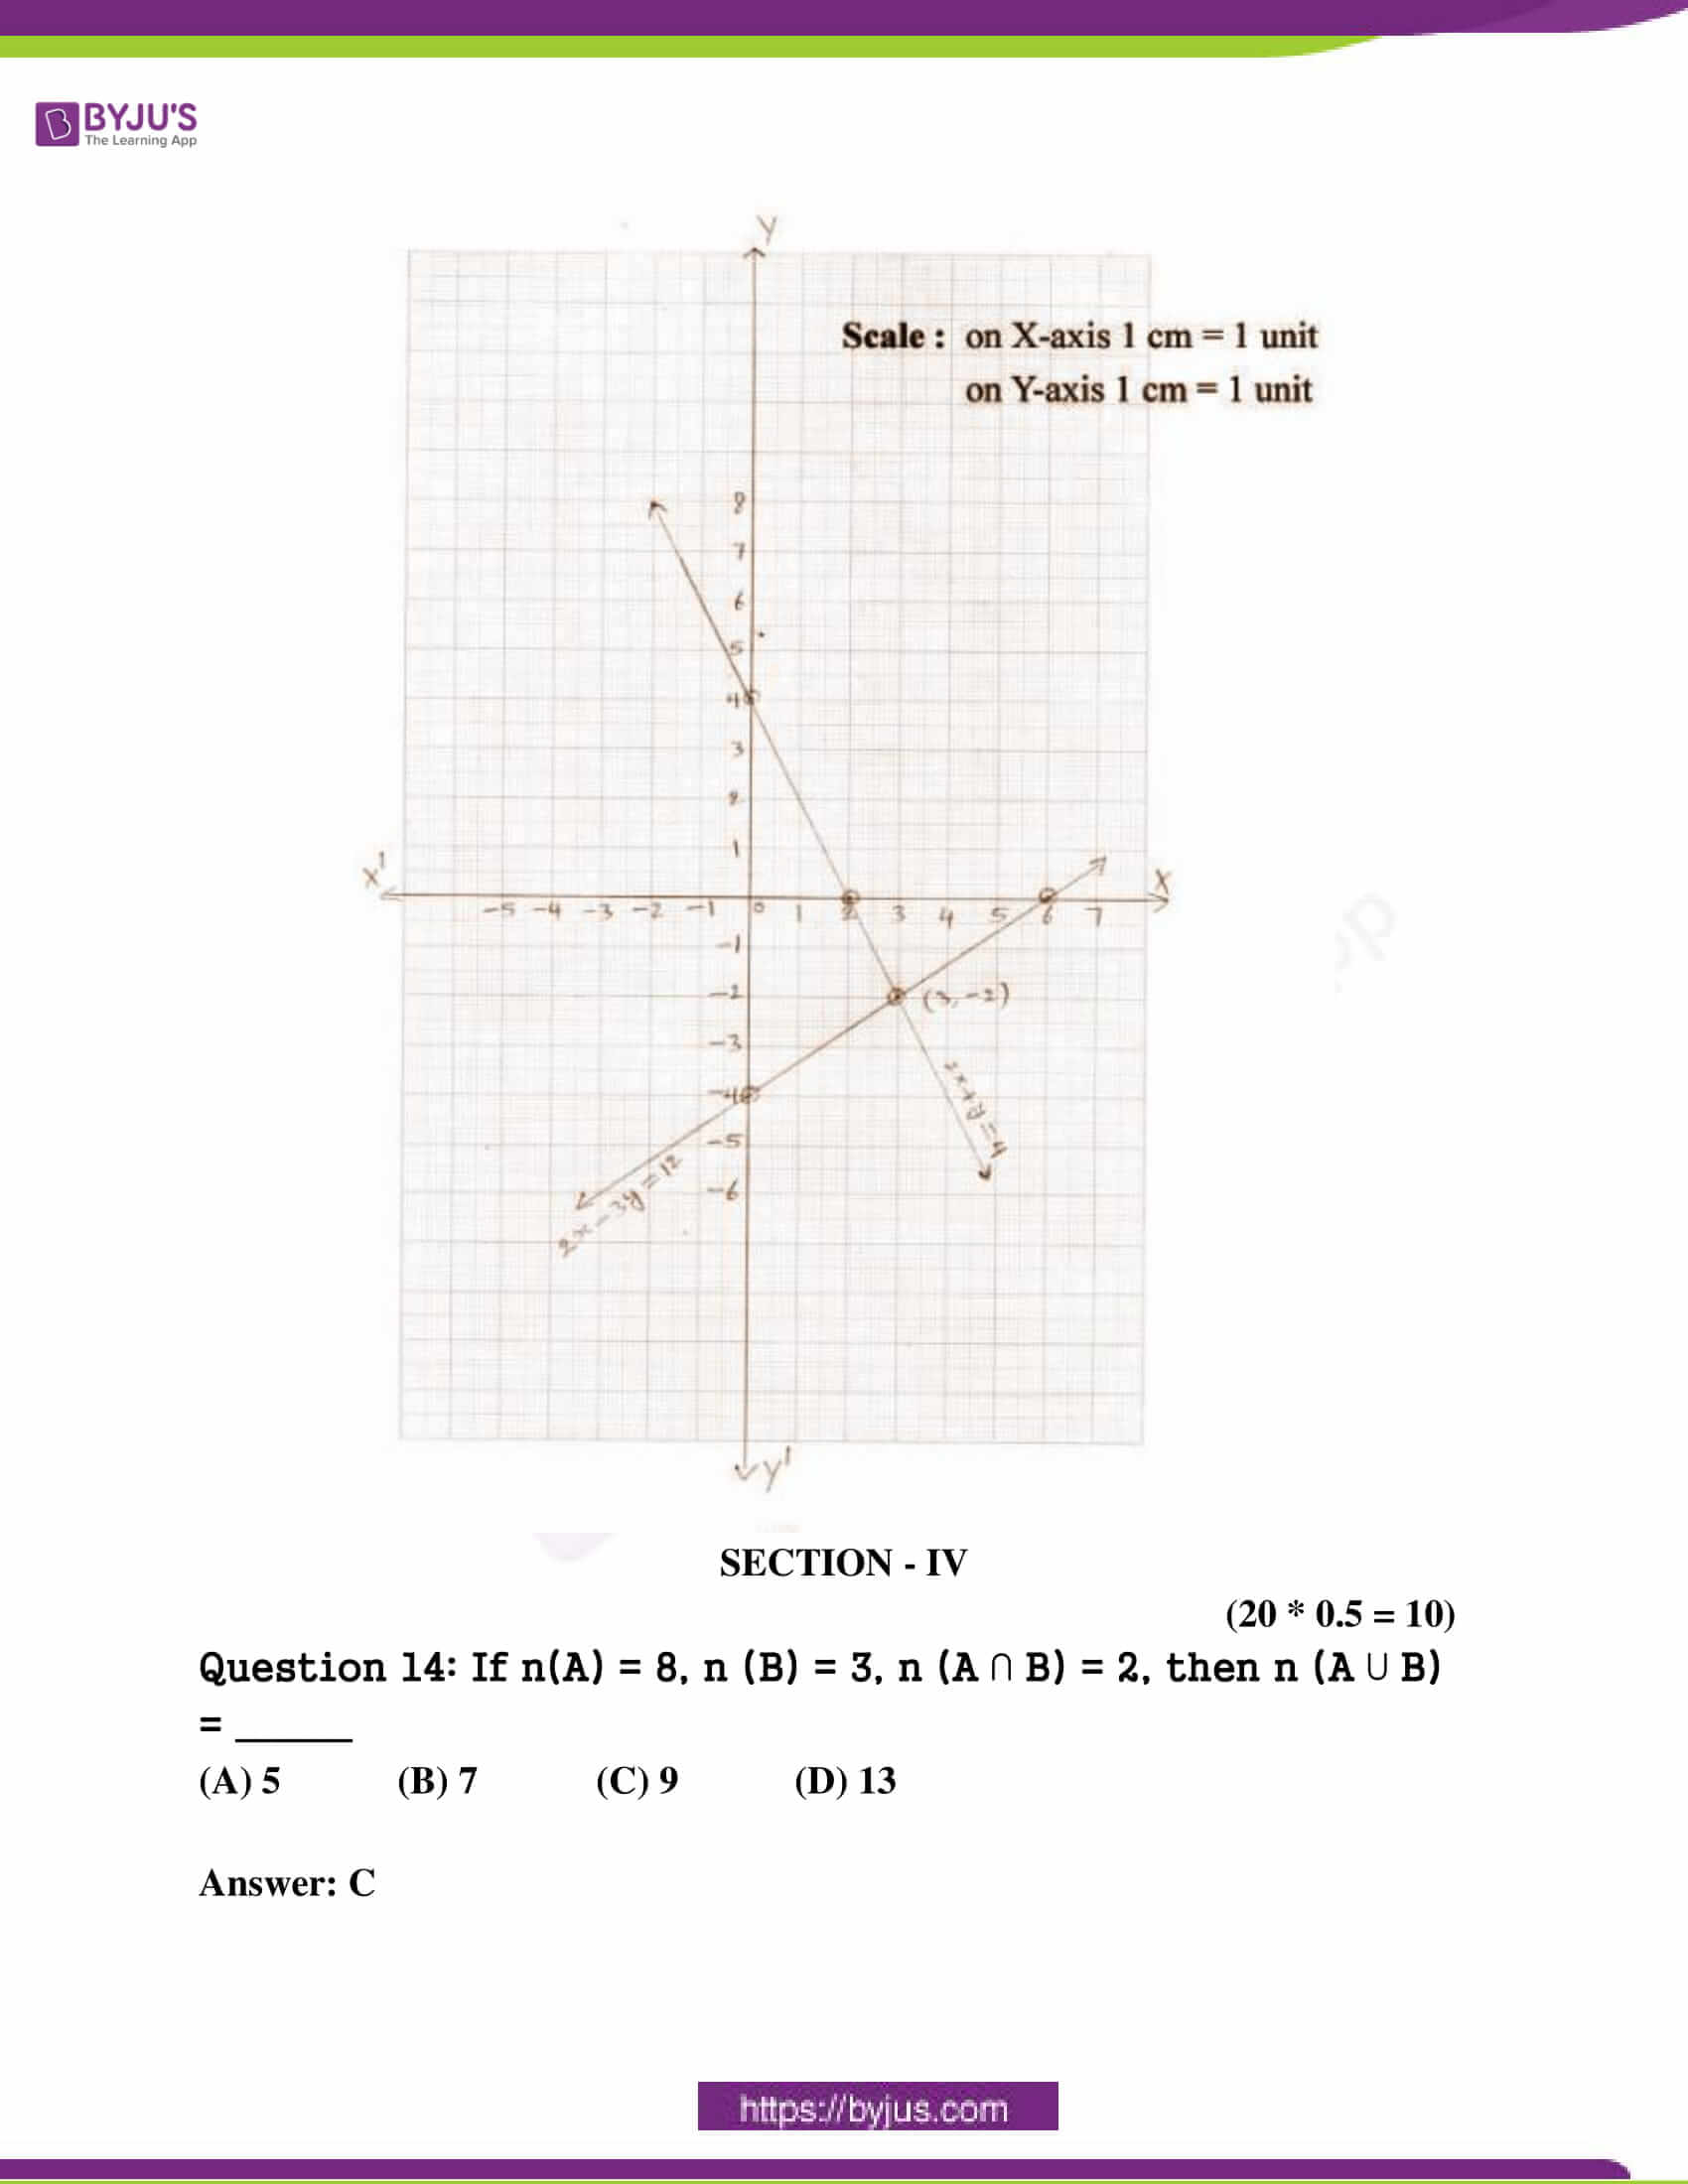 ap class 10 maths question paper 1 sol march 2019 10